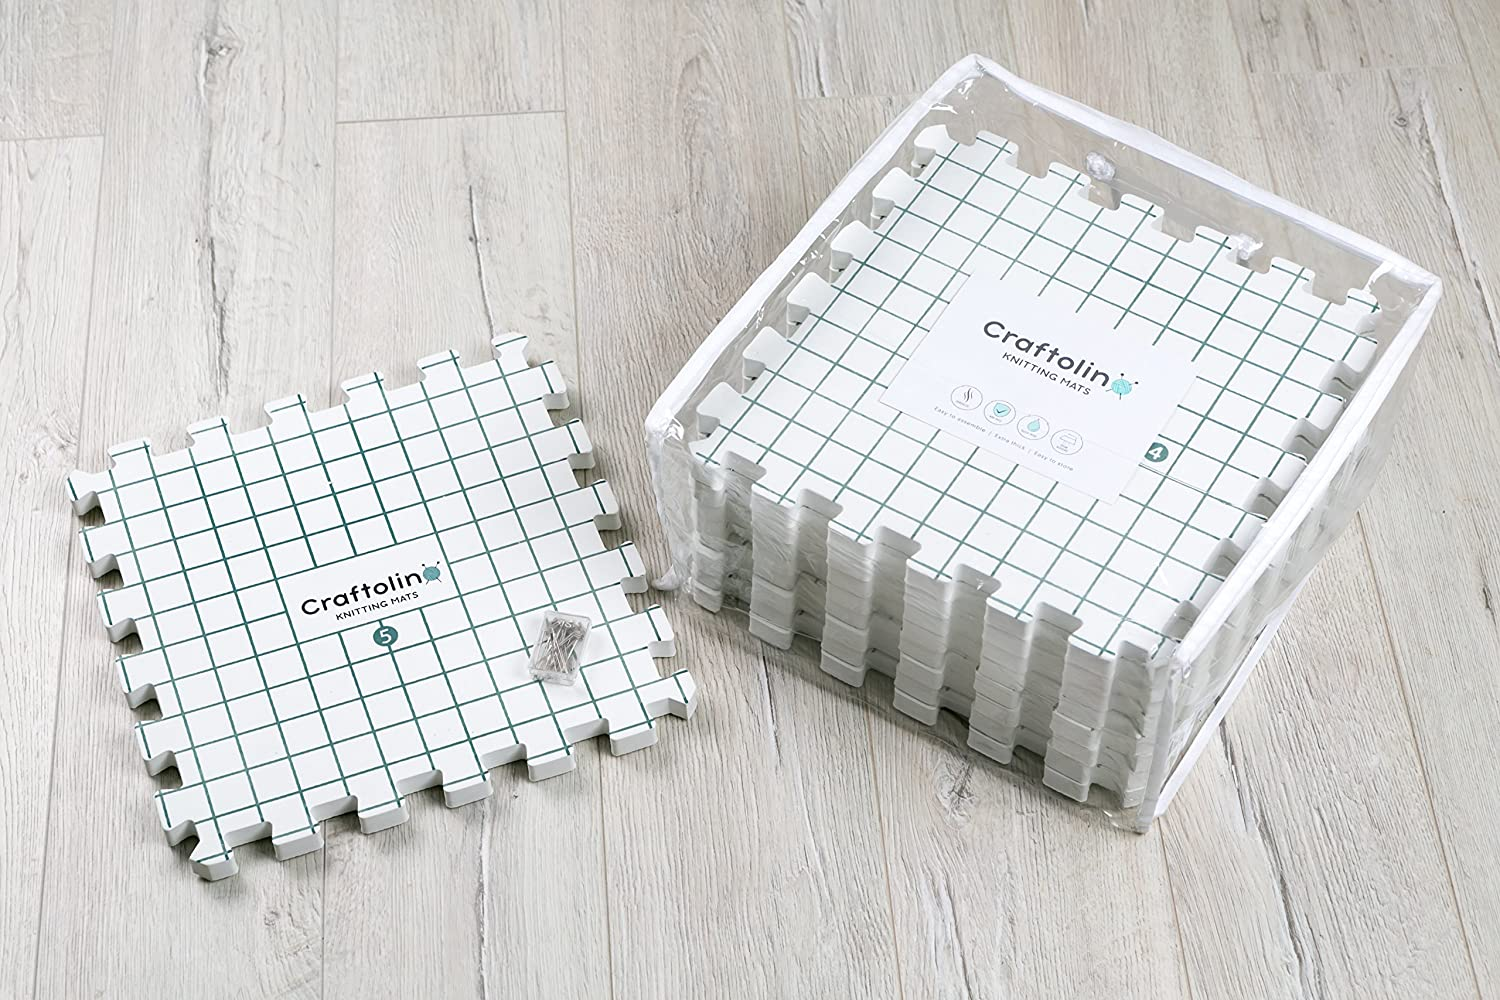 Craftolino Blocking Mats for Knitting - 9 Extra Thick Boards With 1 ...